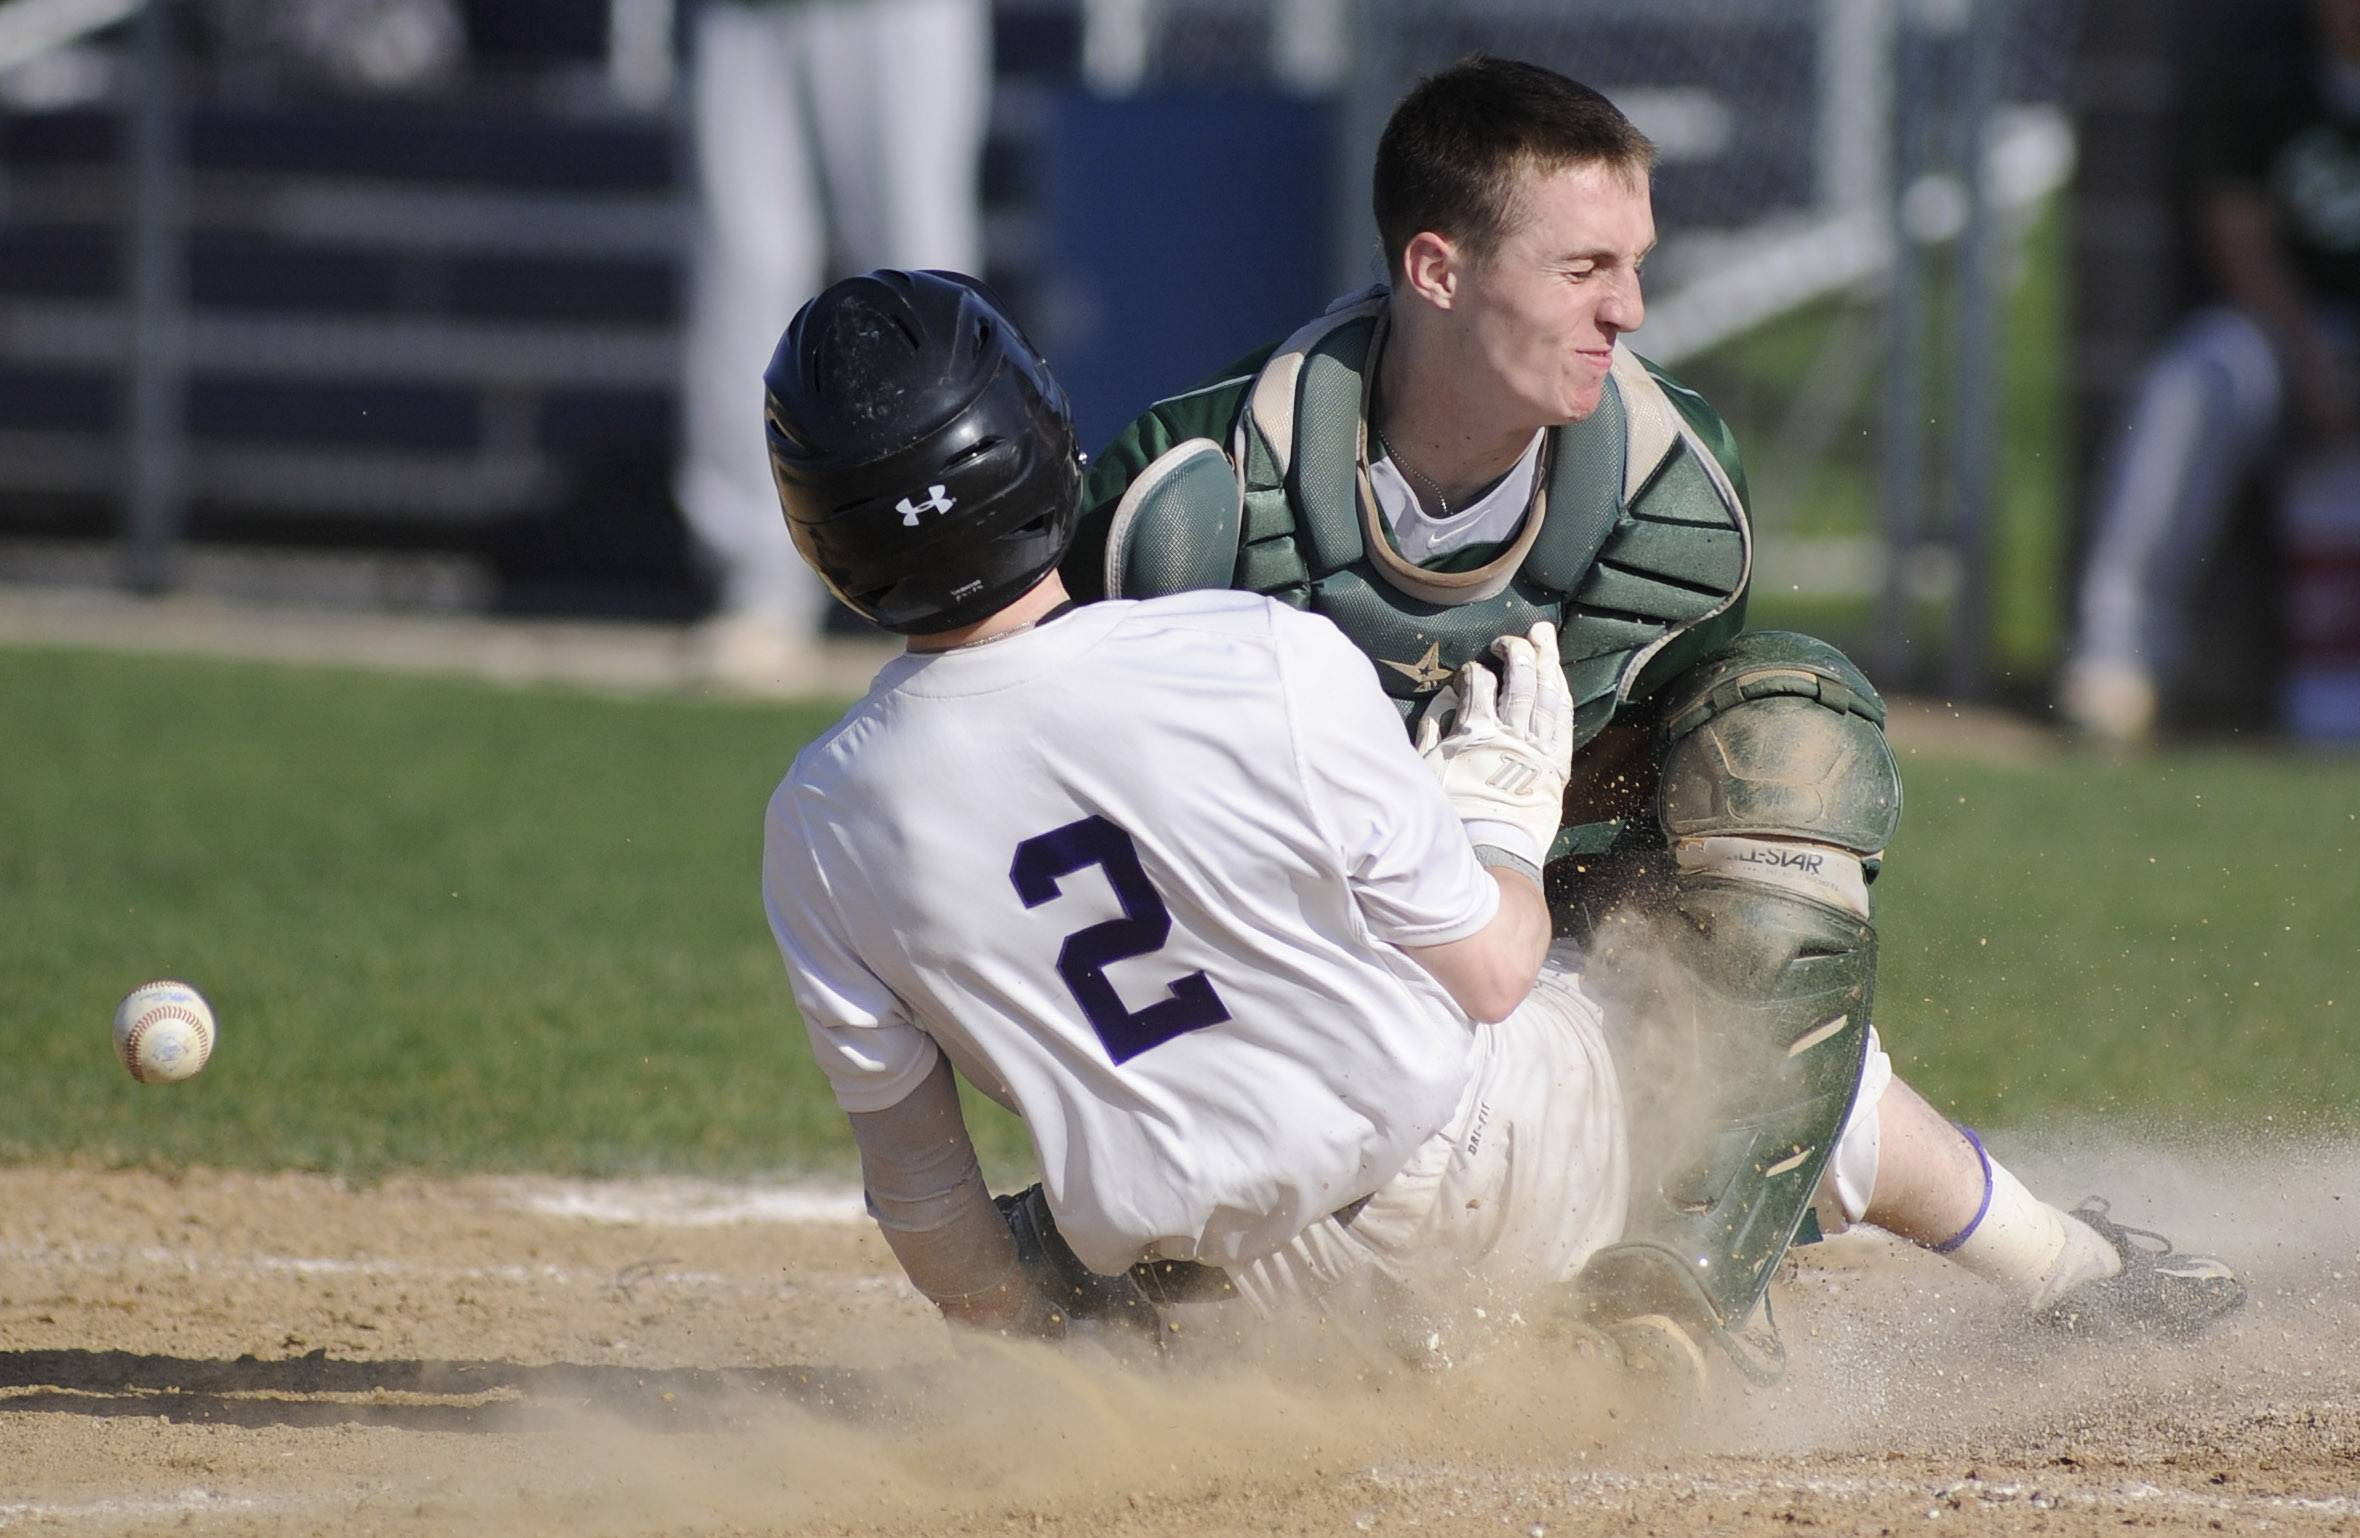 Hampshire's RJ Consigny slides into home plate safely, colliding with Grayslake Central catcher Sam Nozicka after the ball got past his mitt, hitting his leg and popping up in the second inning at Hampshire Friday.